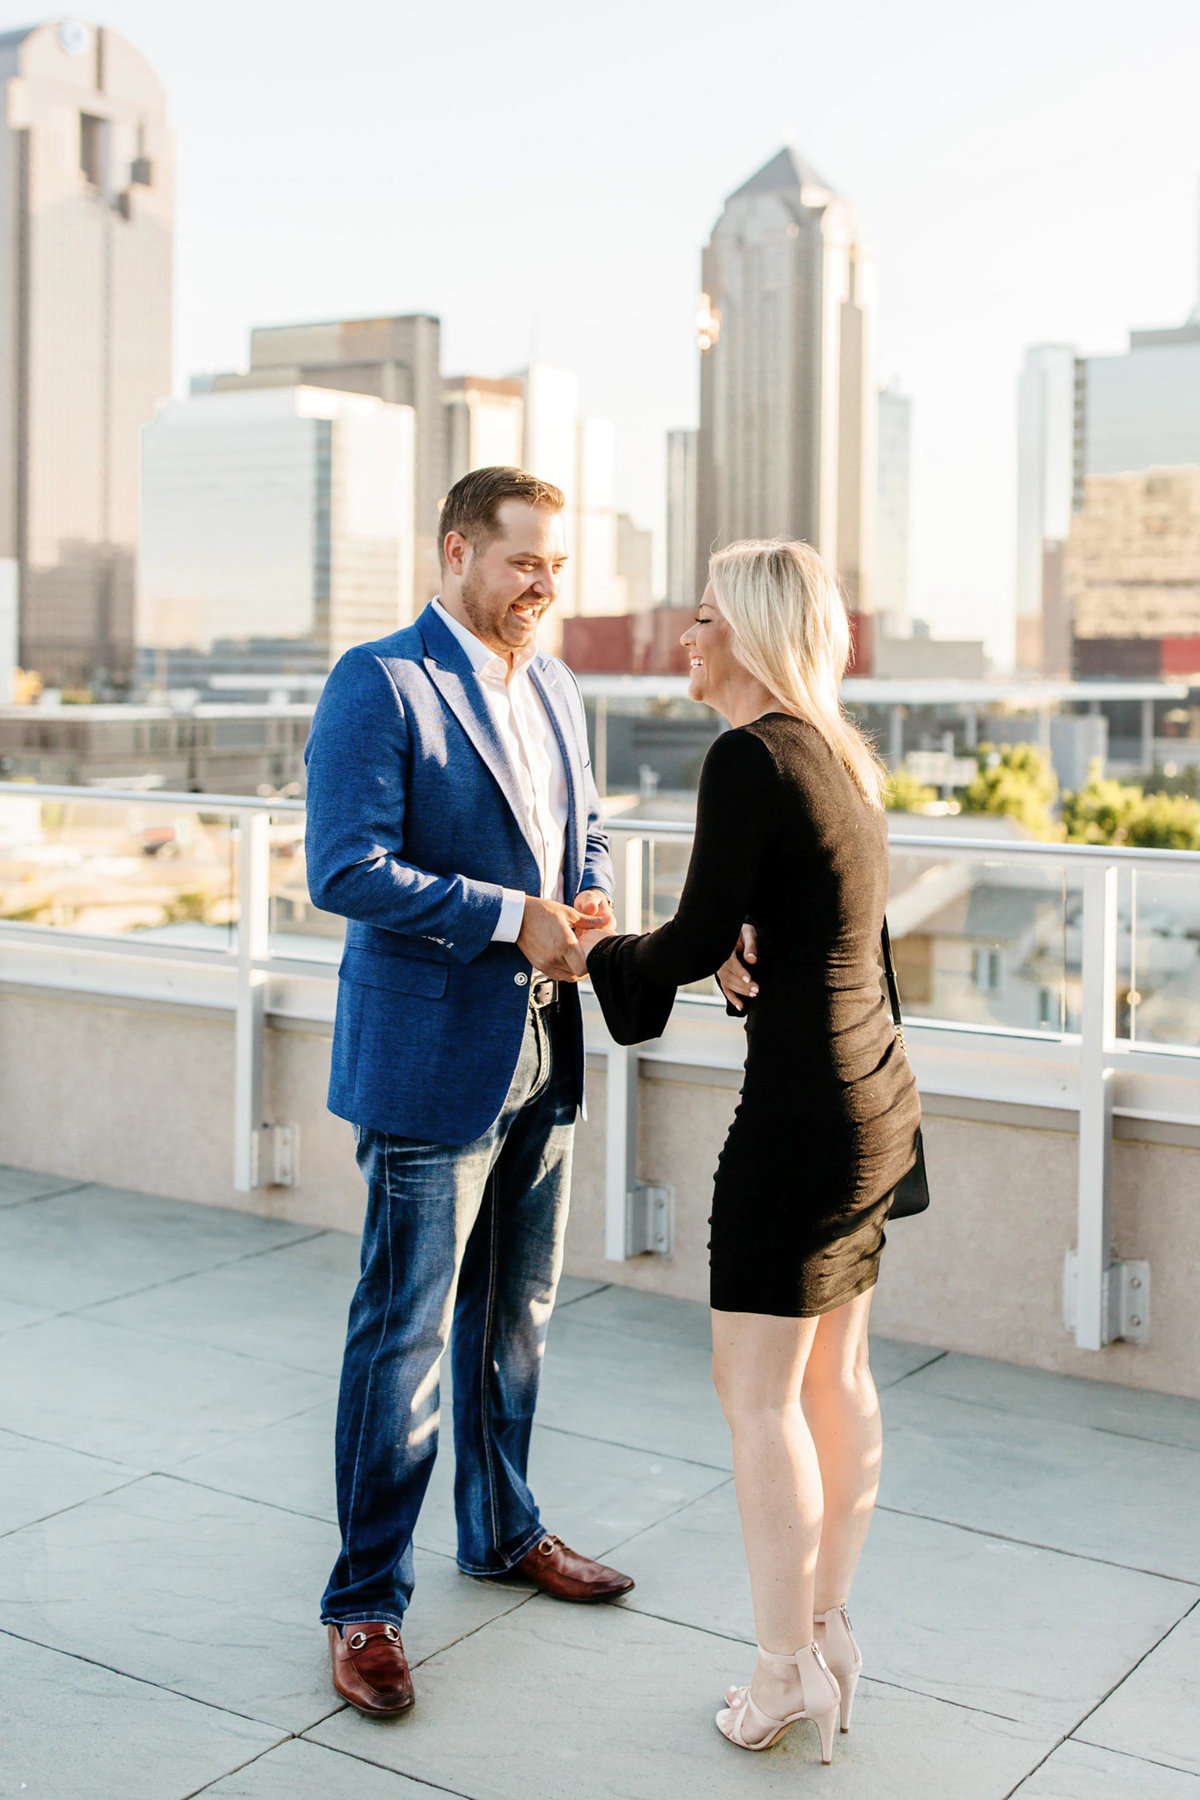 Eric & Megan - Downtown Dallas Rooftop Proposal & Engagement Session-22